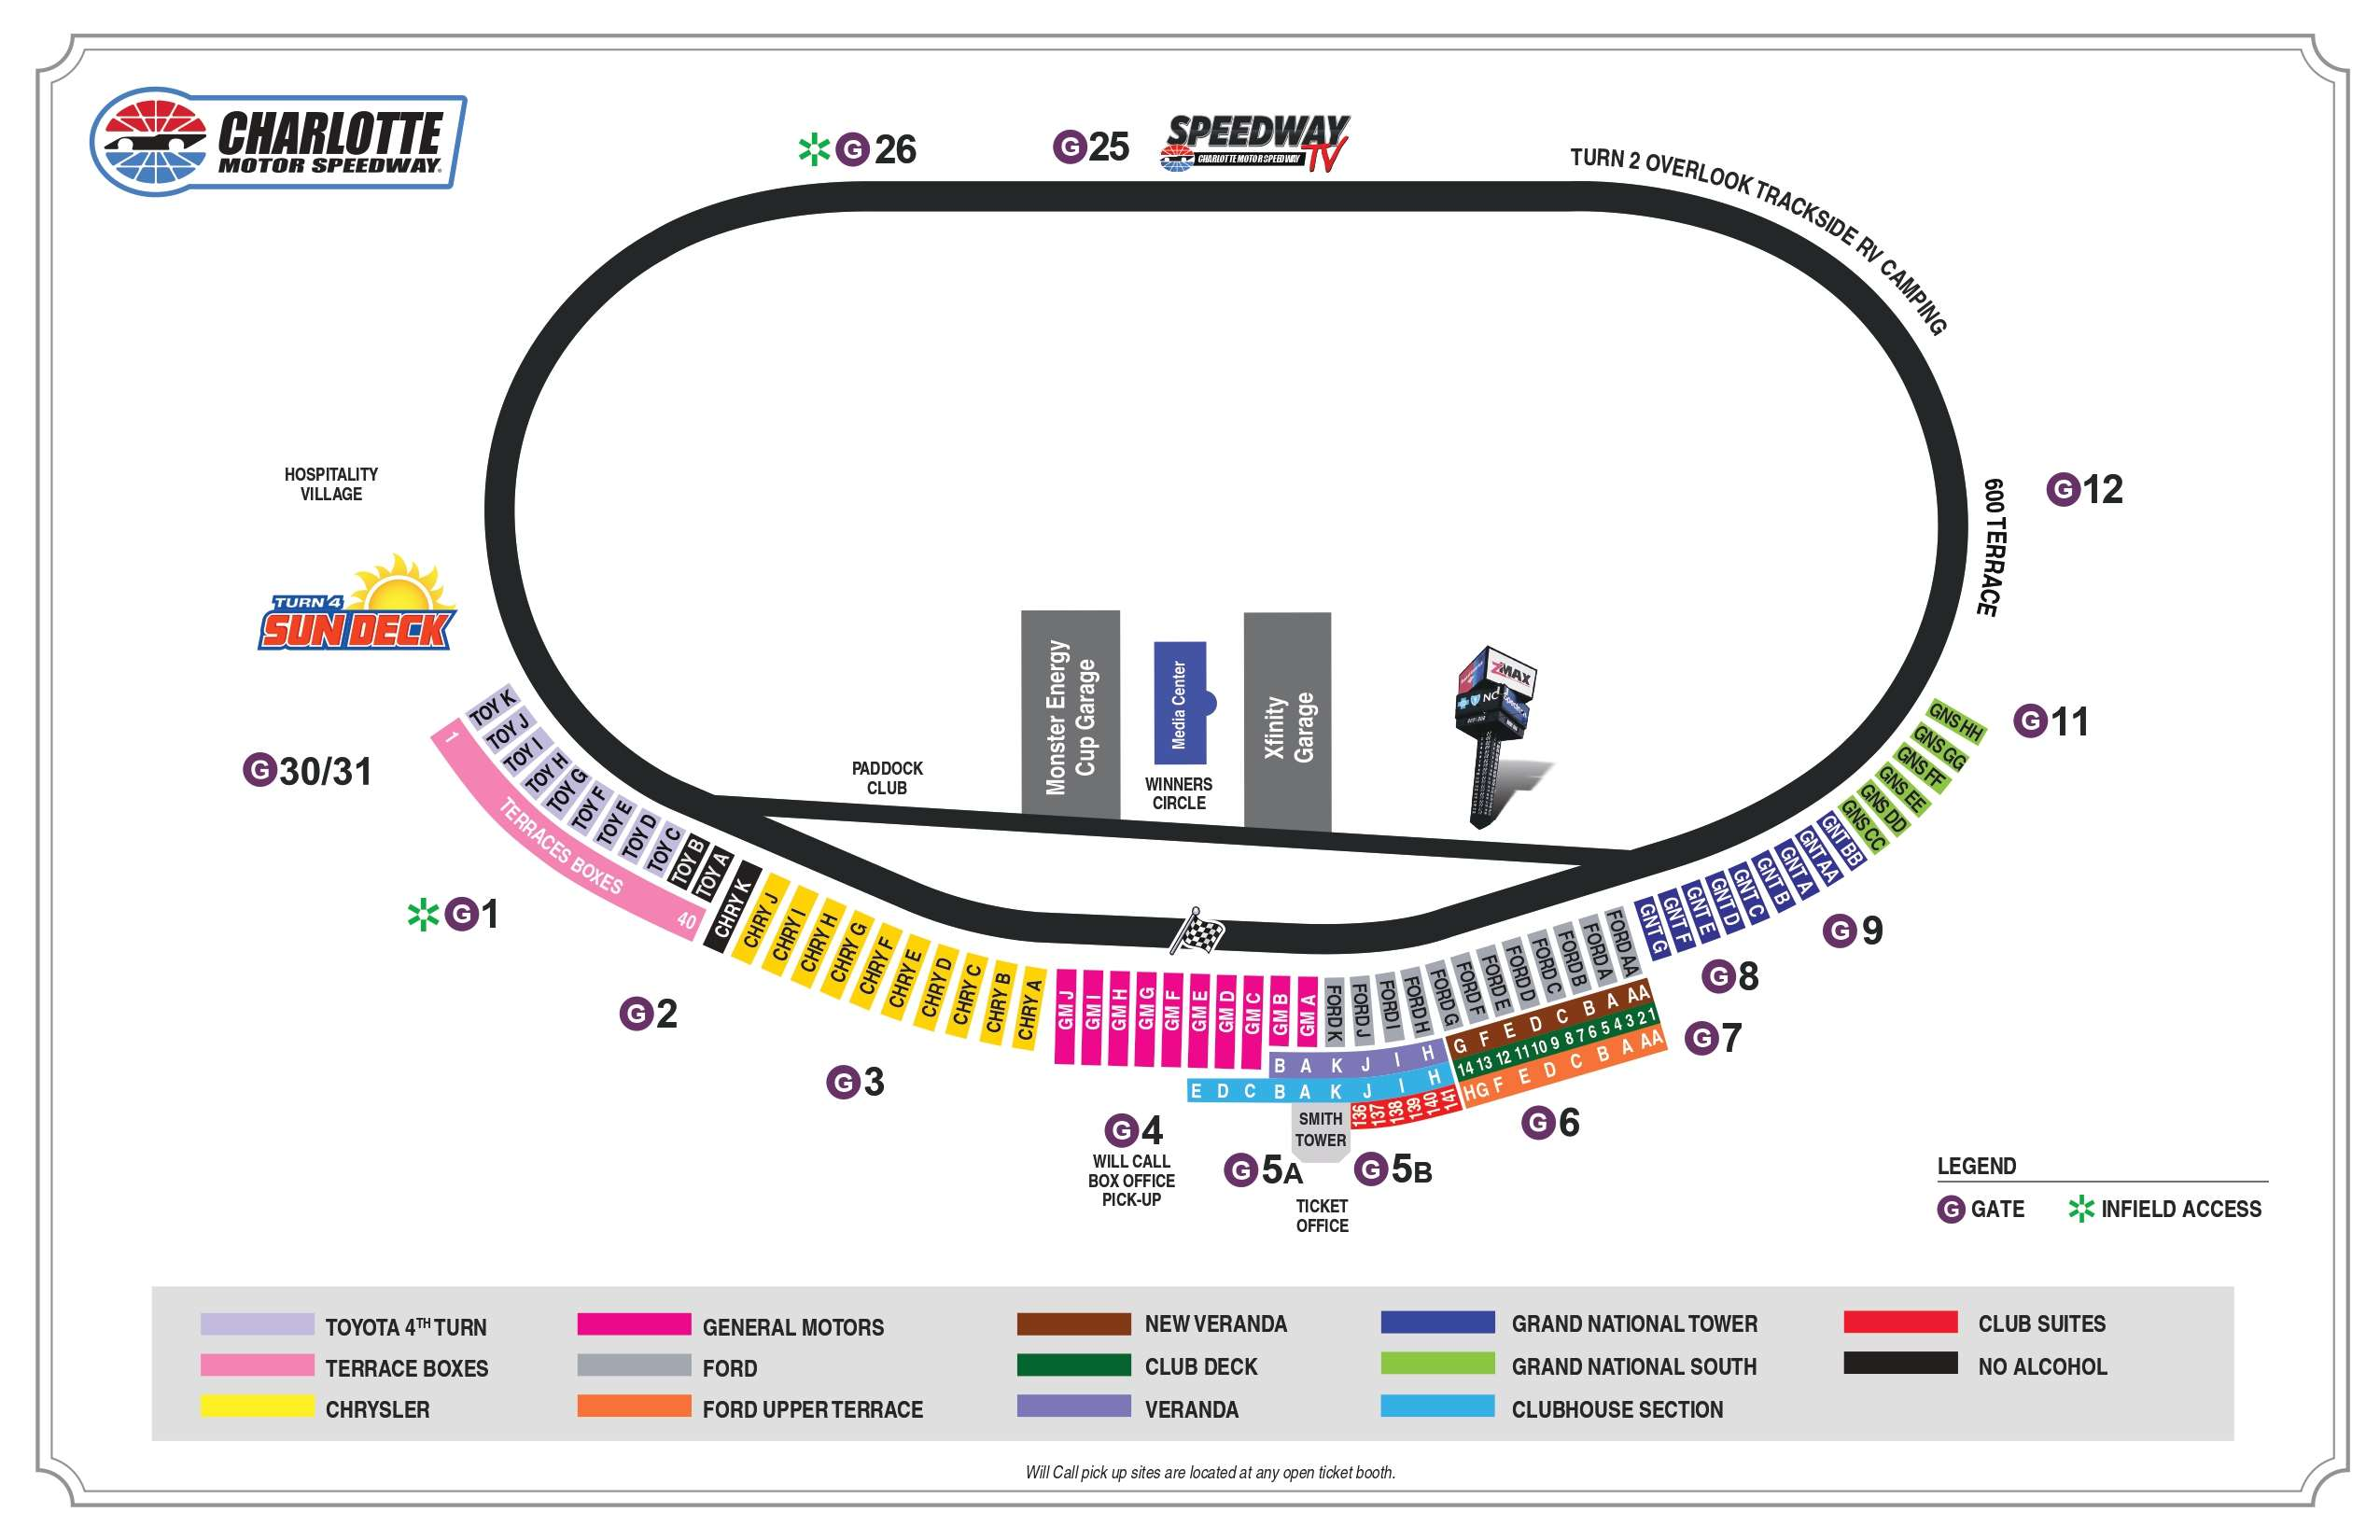 Charlotte Motor Speedway Seating Chart diplays all seats, camping location, towers, ticket office, veranda, terrace boxes, deck, hospitality village, start finish line, turns, etc.